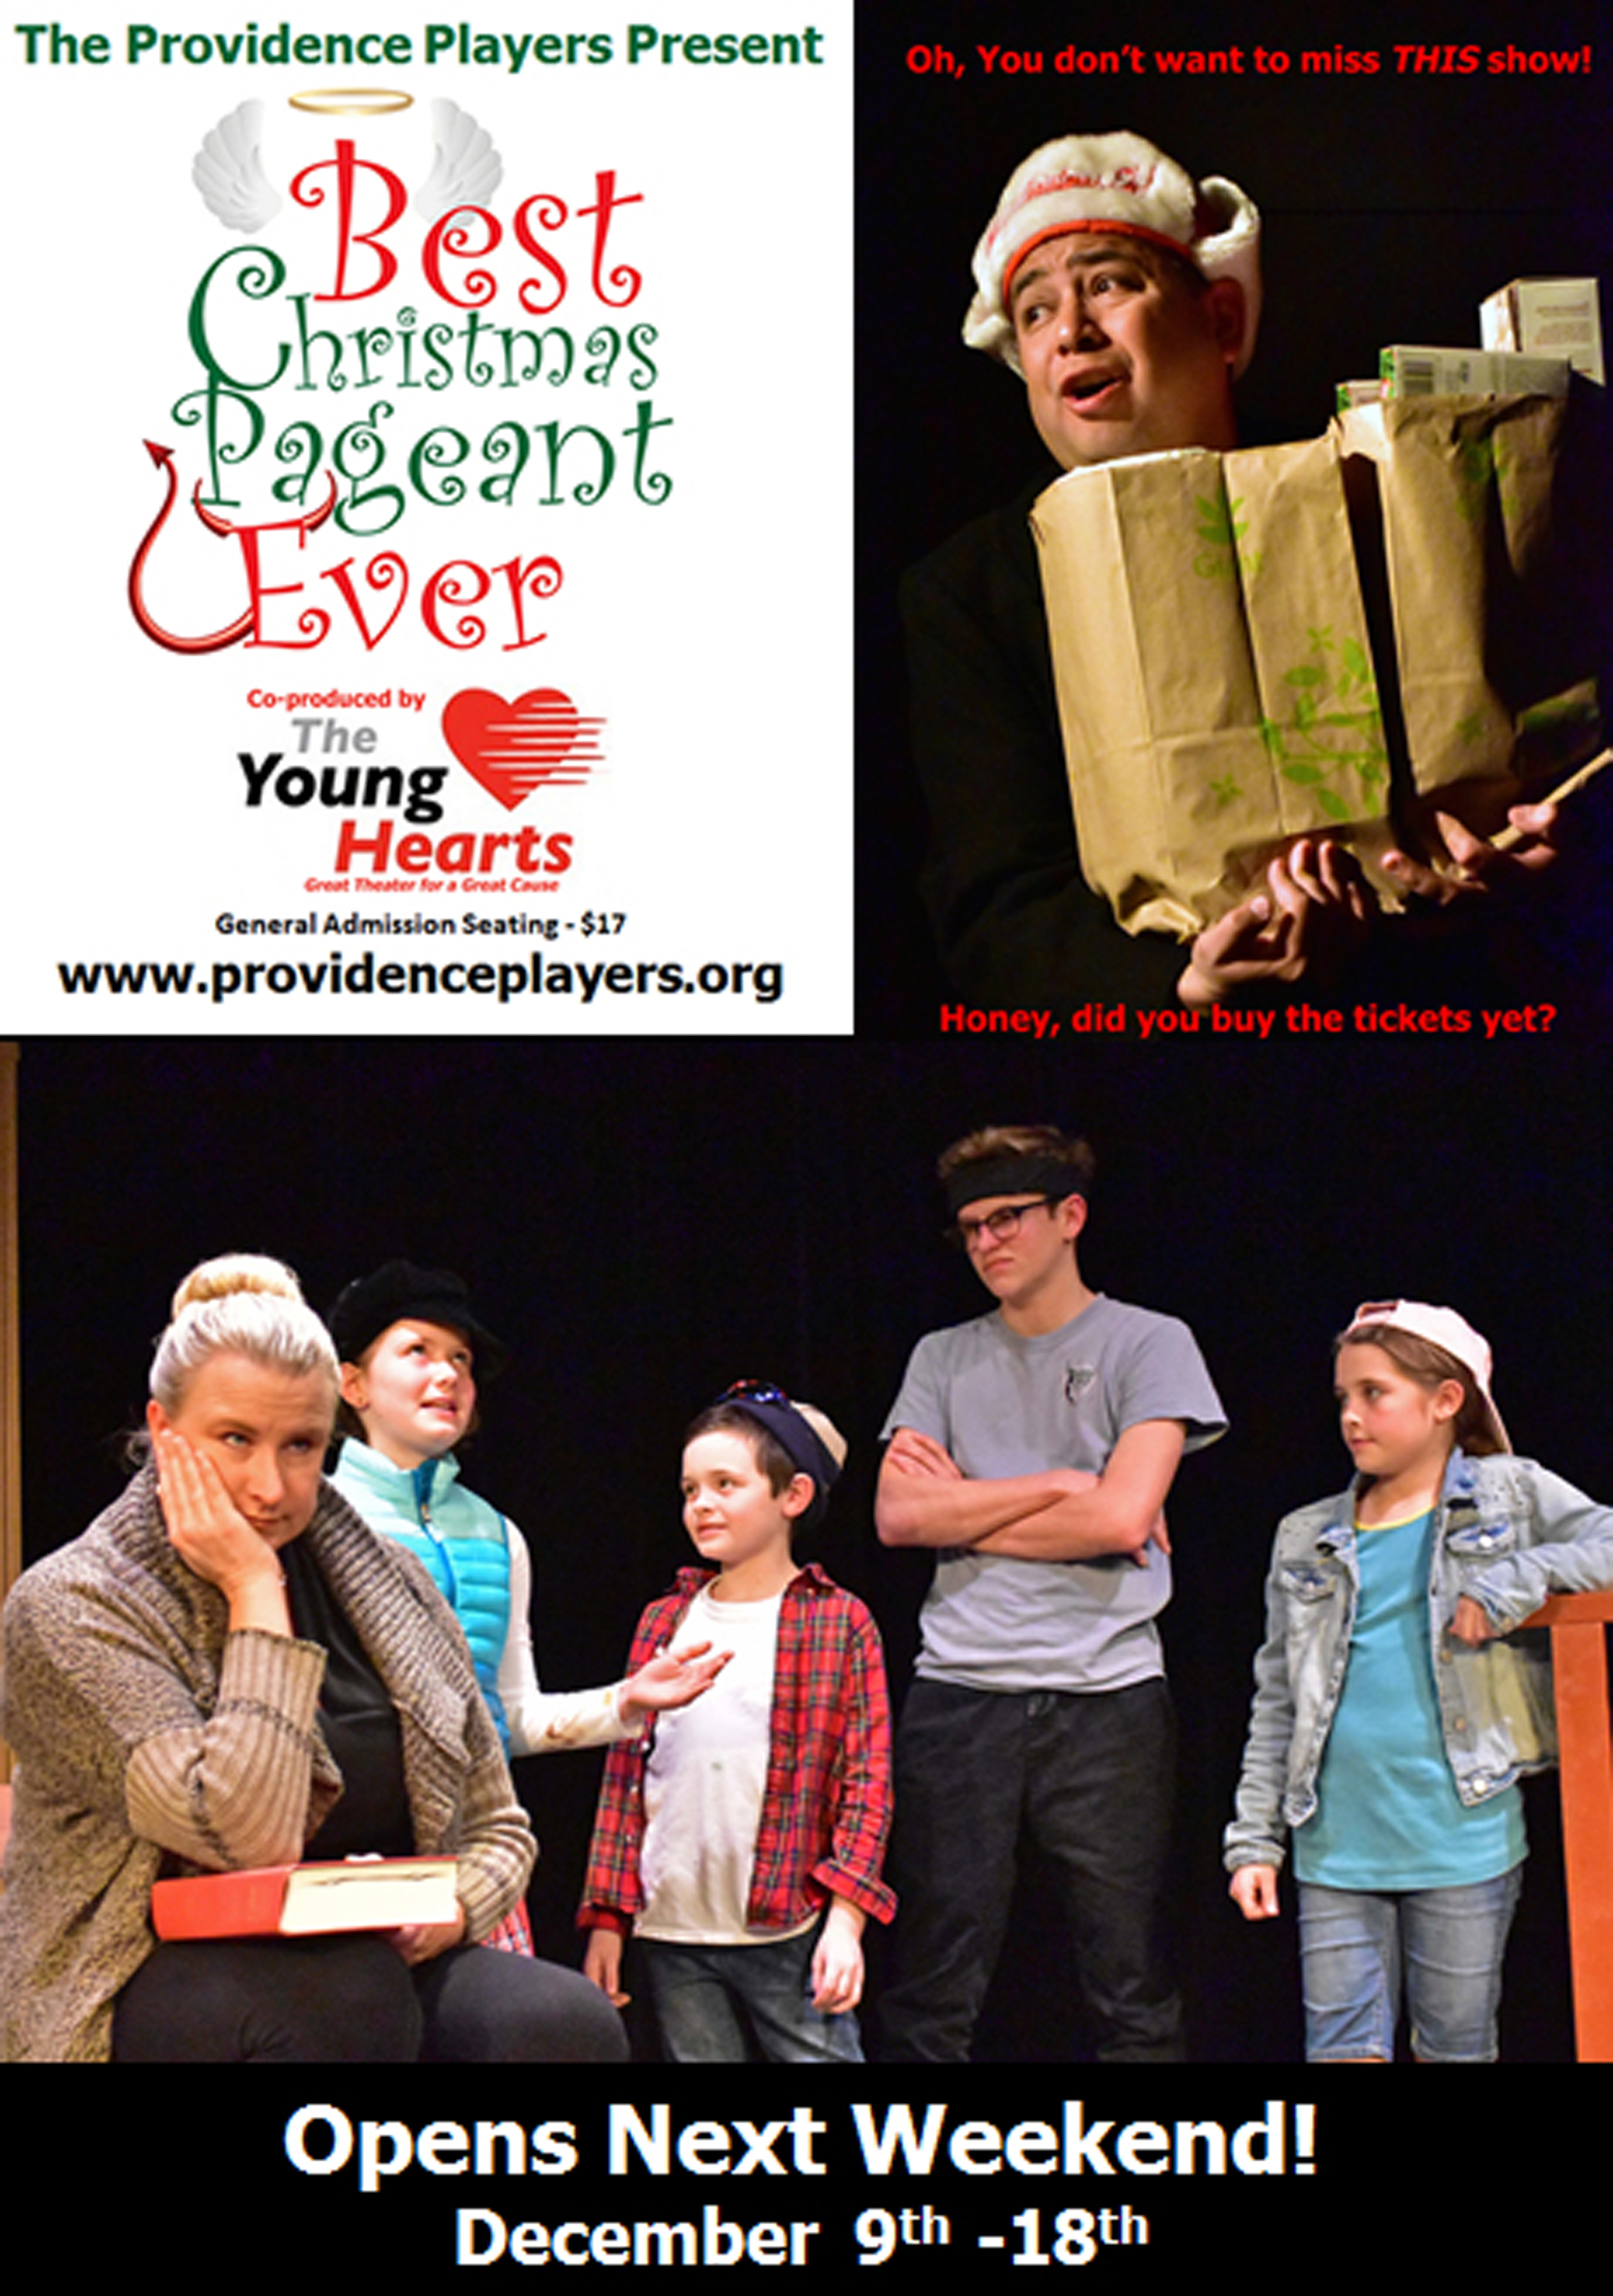 ppf-best-christmas-pageant-ever-opens-next-weekend-photo-by-chip-gertzog-providence-players